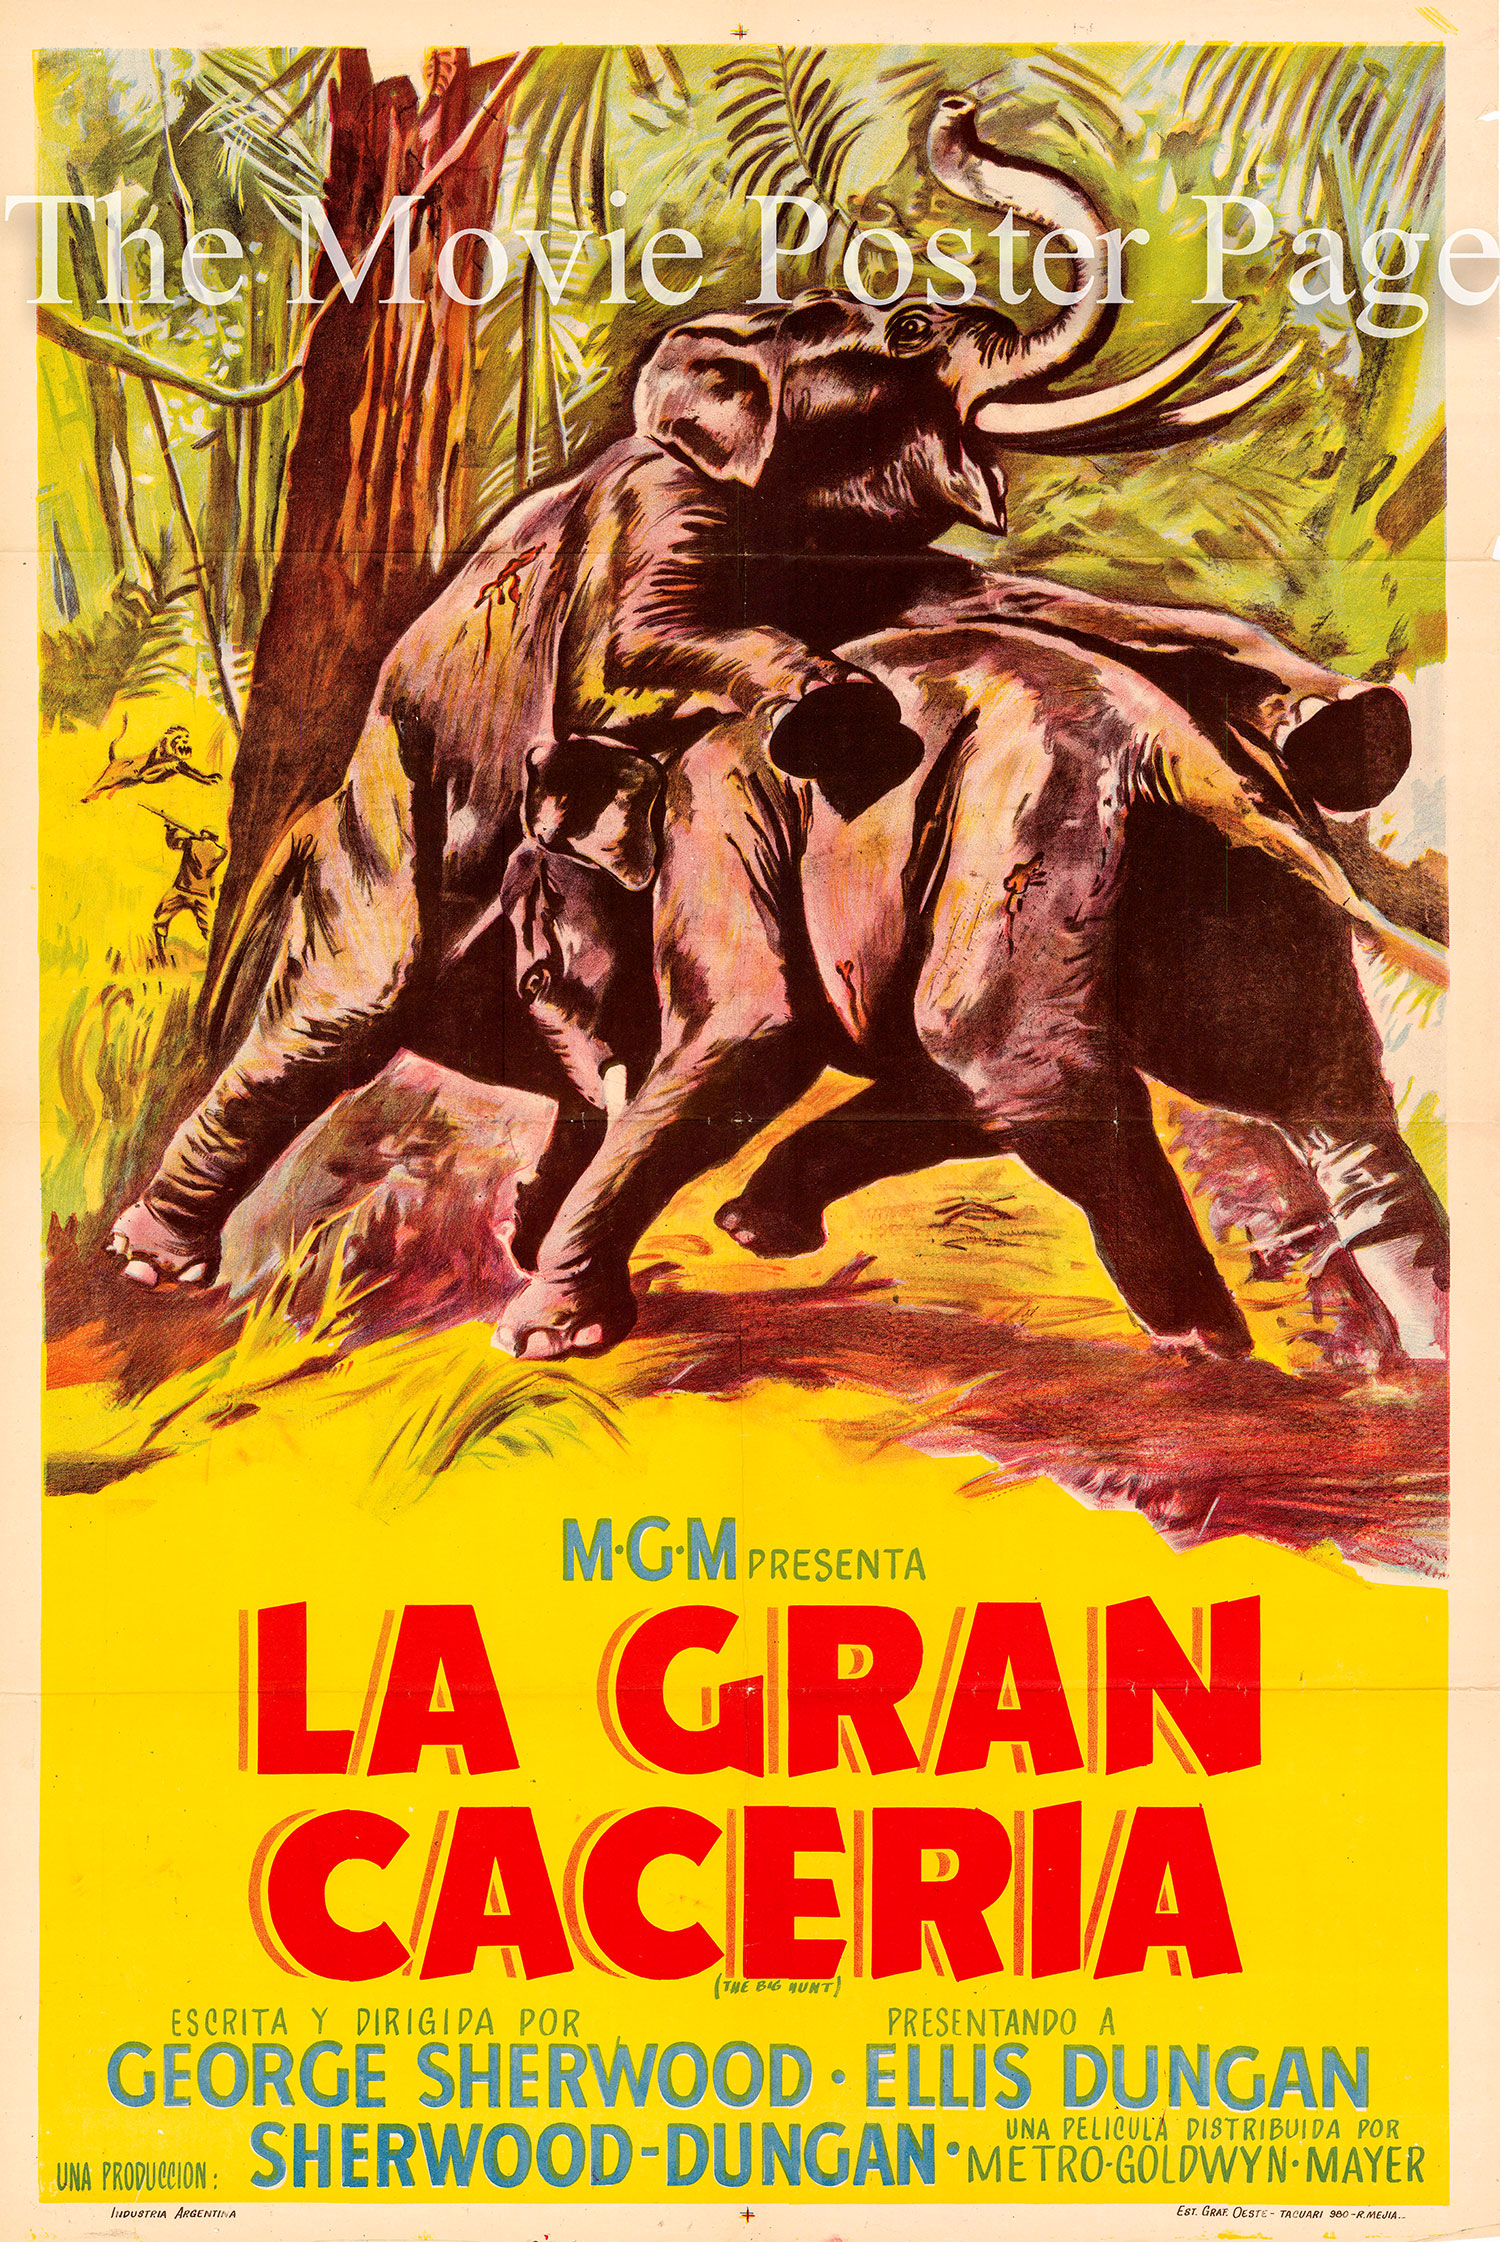 Pictured is an Argentine one-sheet poster for the 1959 George Sherwood documentary film The Big Hunt with commentary by Sidney Hertzberg.